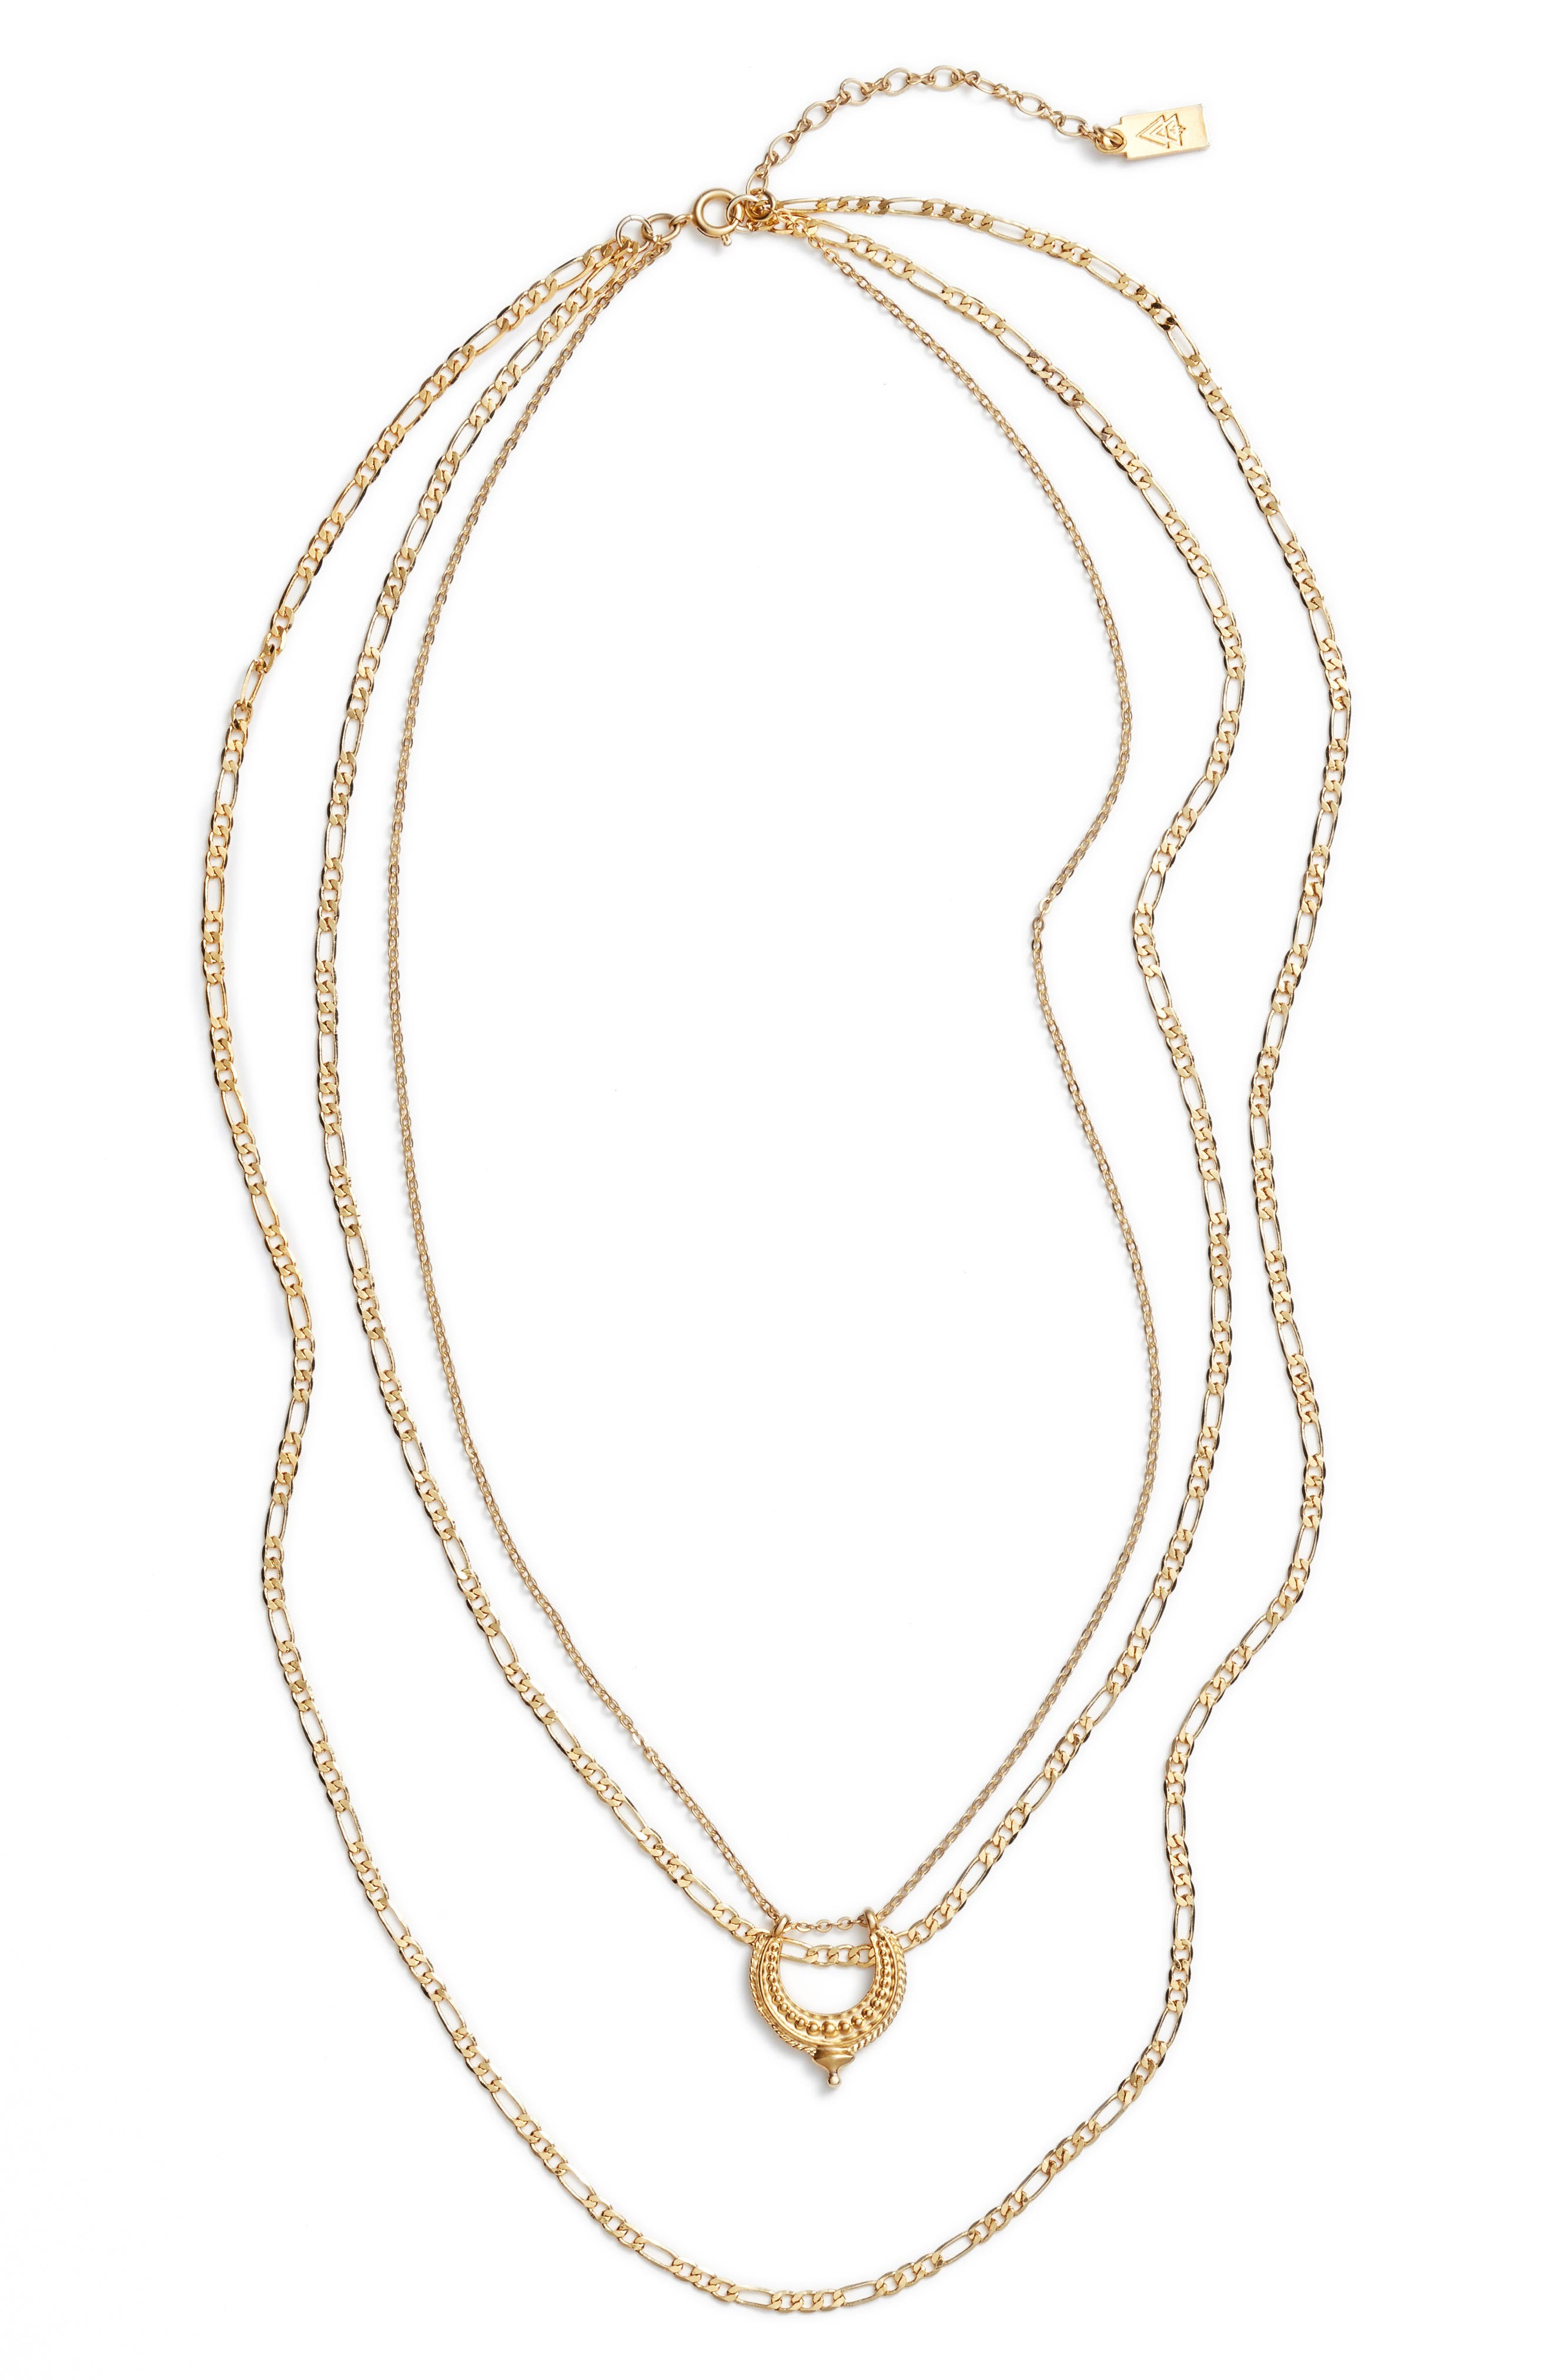 Ubud Layered Necklace,                         Main,                         color, Gold